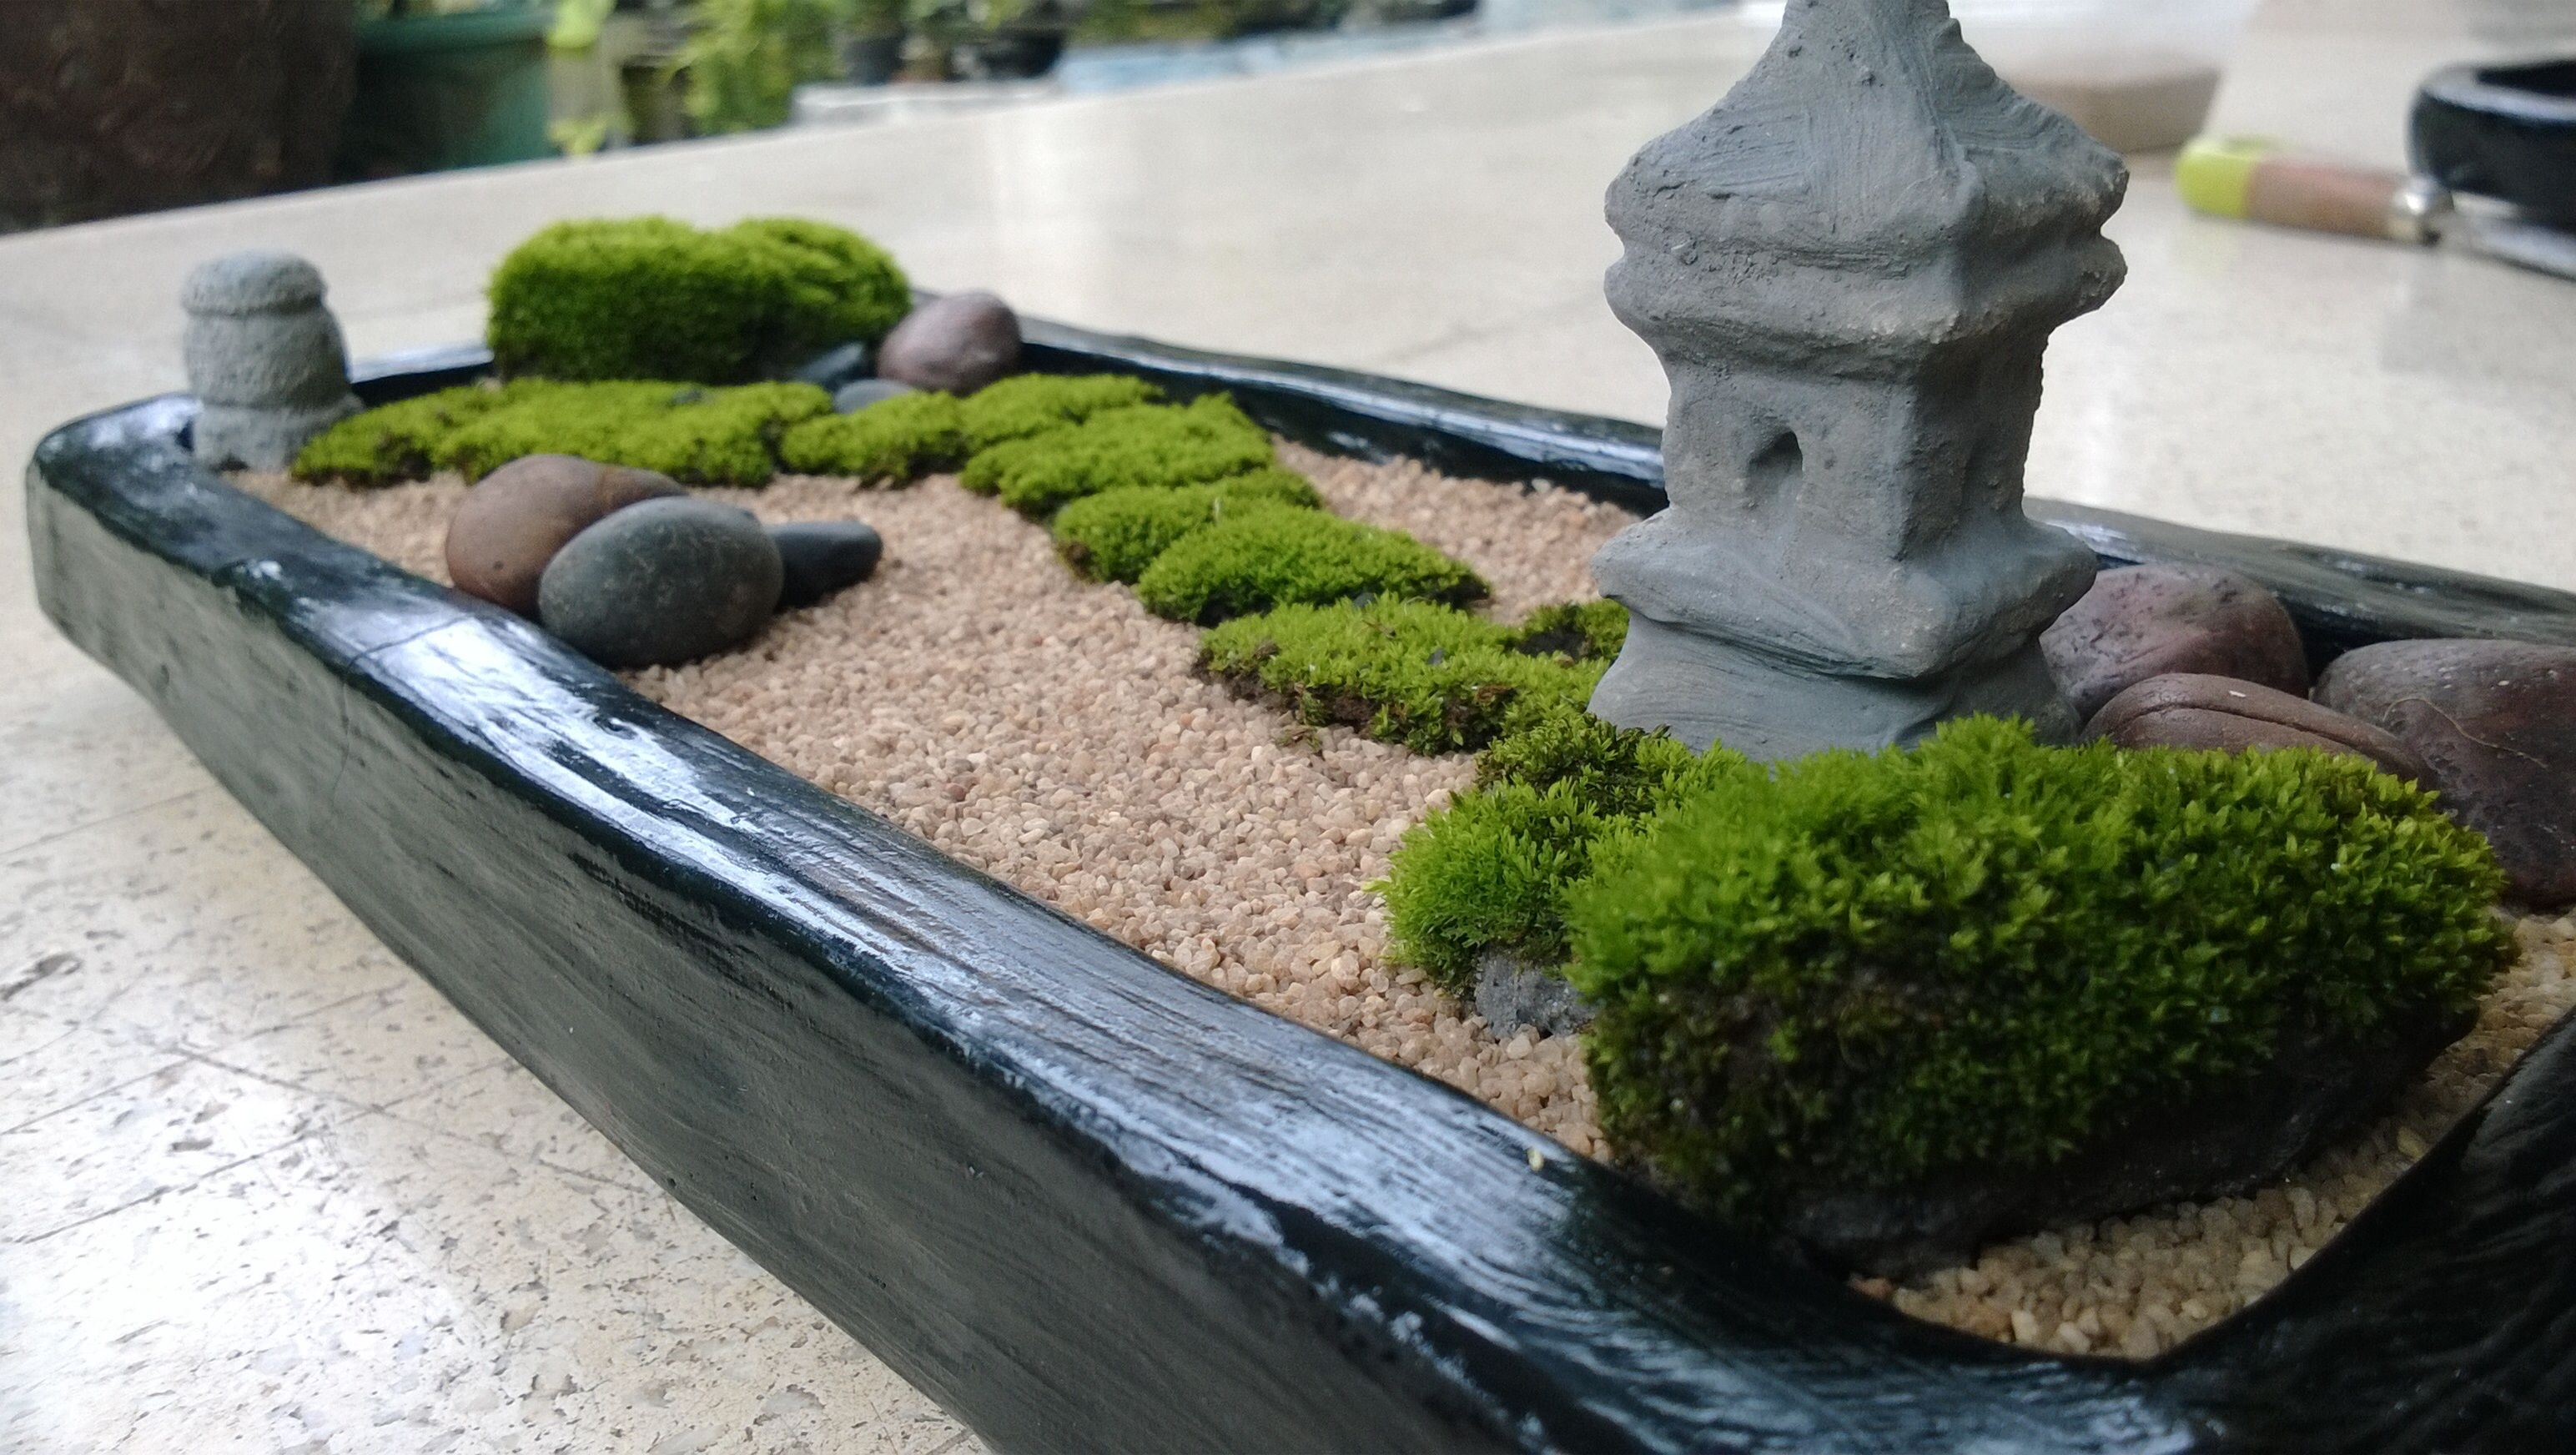 Diy, Your Own Mini Zen Garden Absolutely Love The Moss! I Neeeed A throughout Diy Mini Zen Garden Ideas